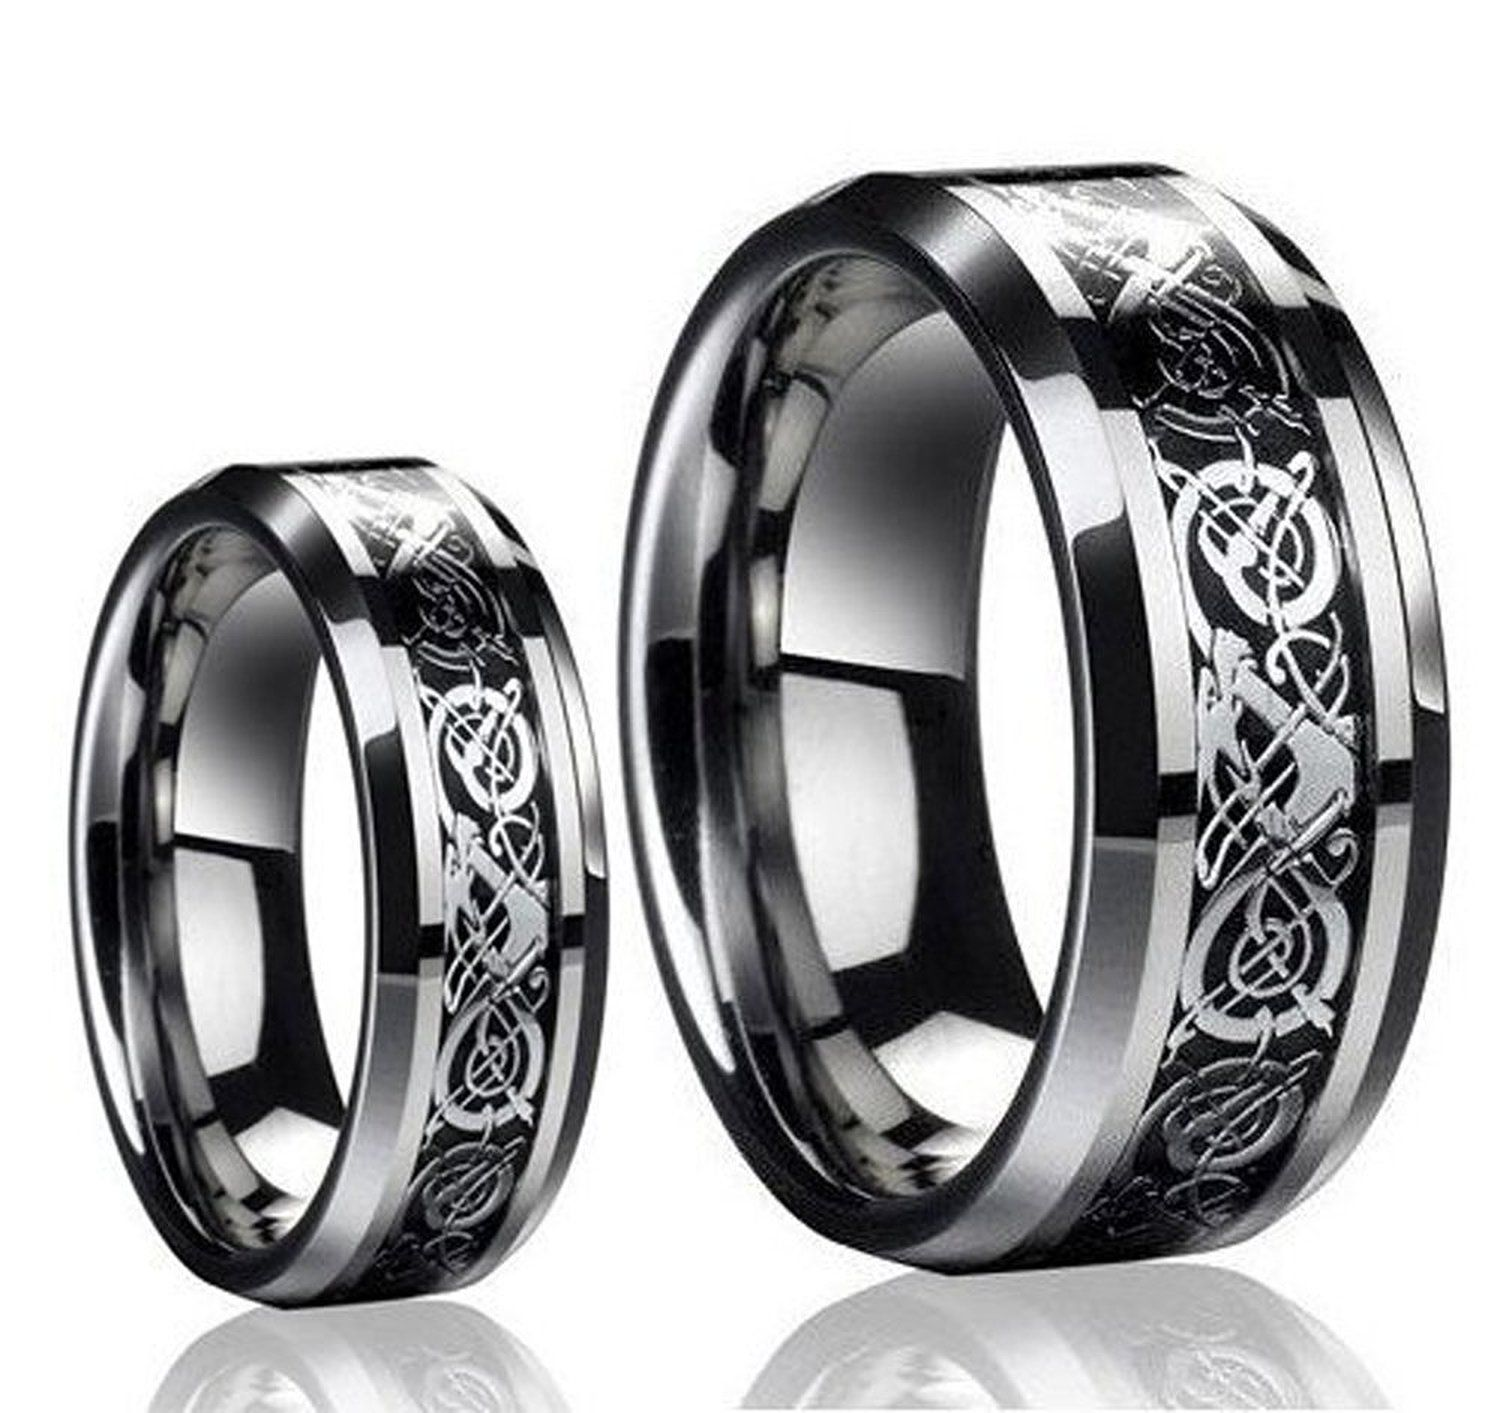 His hers 8mm6mm tungsten carbide celtic knot dragon design his hers 8mm6mm tungsten carbide celtic knot dragon design carbon fiber inlay wedding biocorpaavc